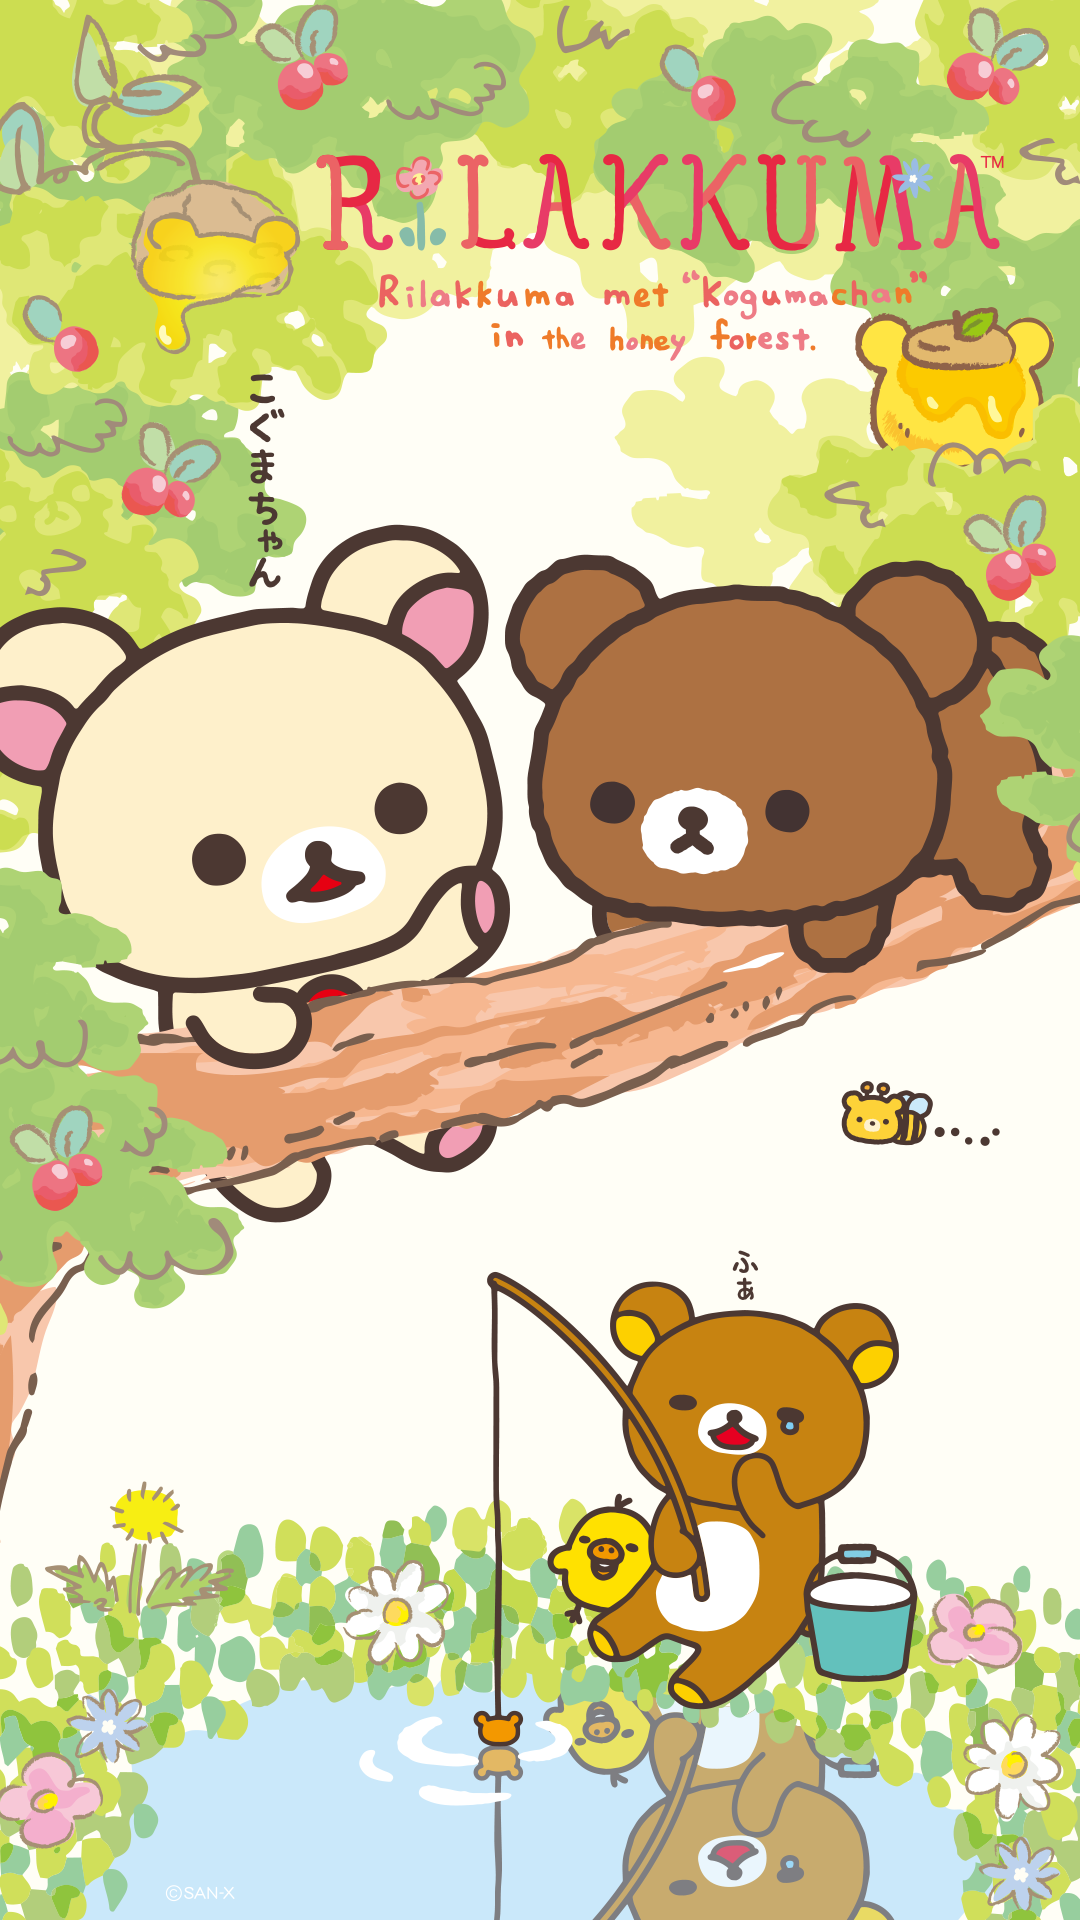 Quickly Put Small Fresh Rilakkuma Wallpaper For Your Phone Now In